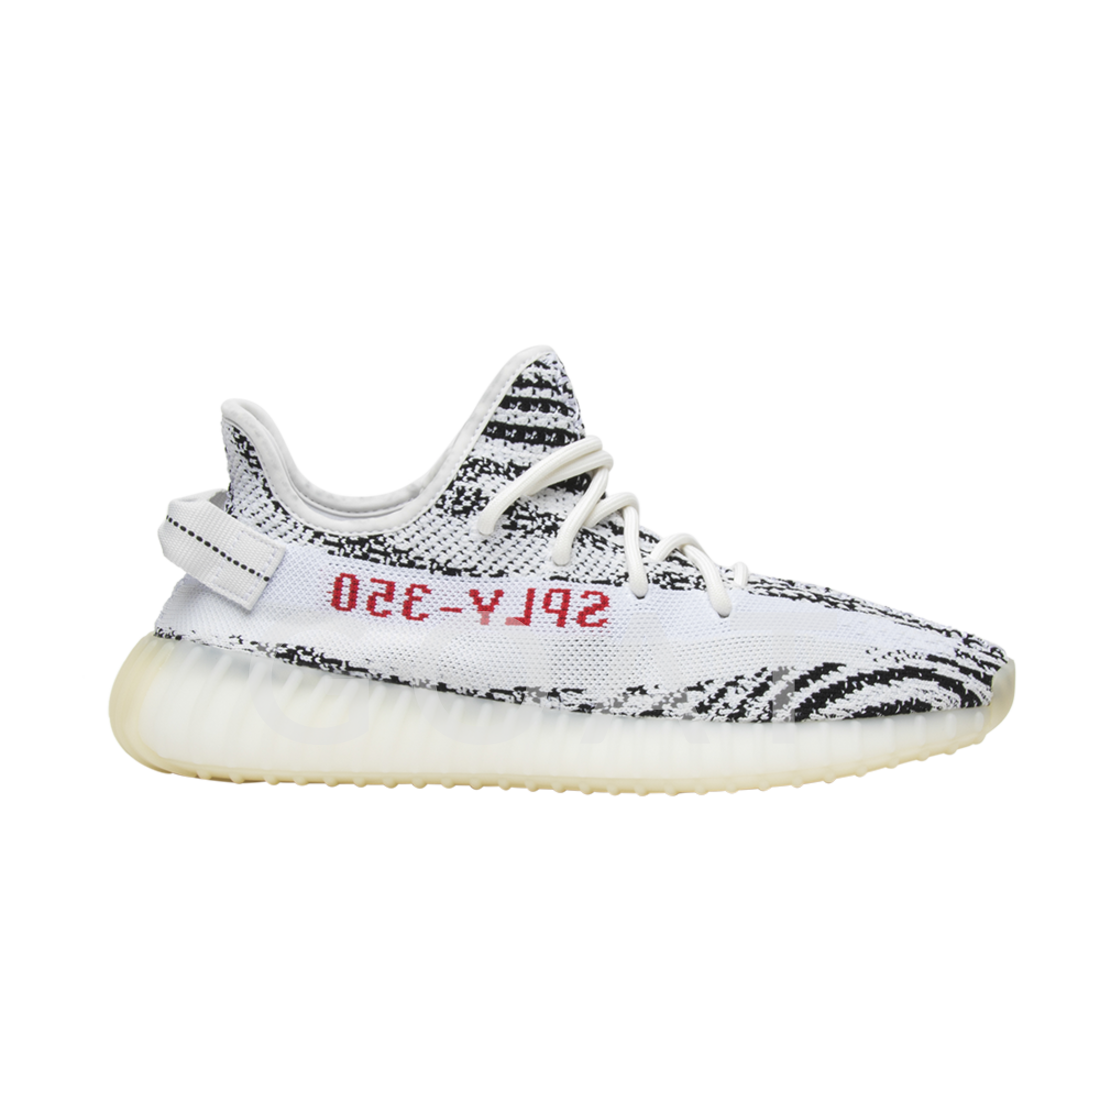 2c7b974d571 Yeezy Boost 350 V2  Zebra  - Adidas - CP9654 - white core black red